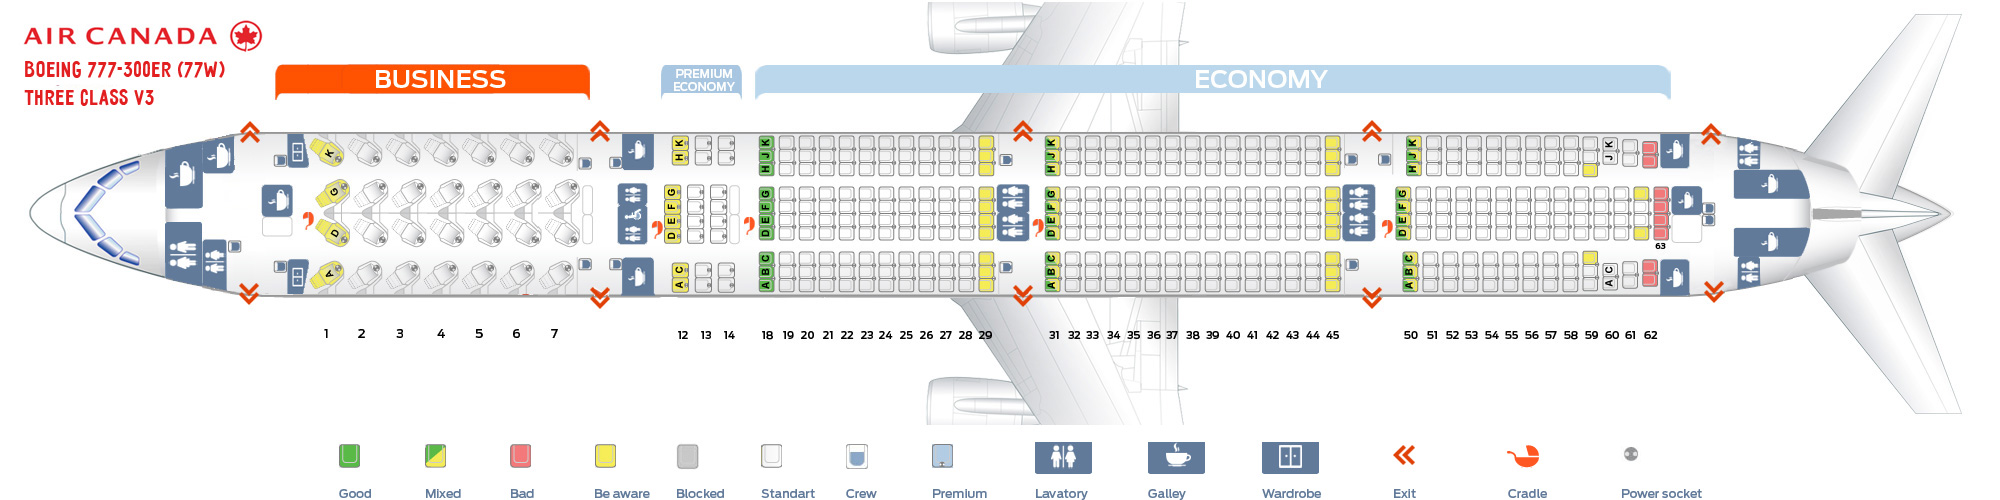 Air Canada Aircraft 77w Seat Map Seat map Boeing 777 300 Air Canada. Best seats in plane